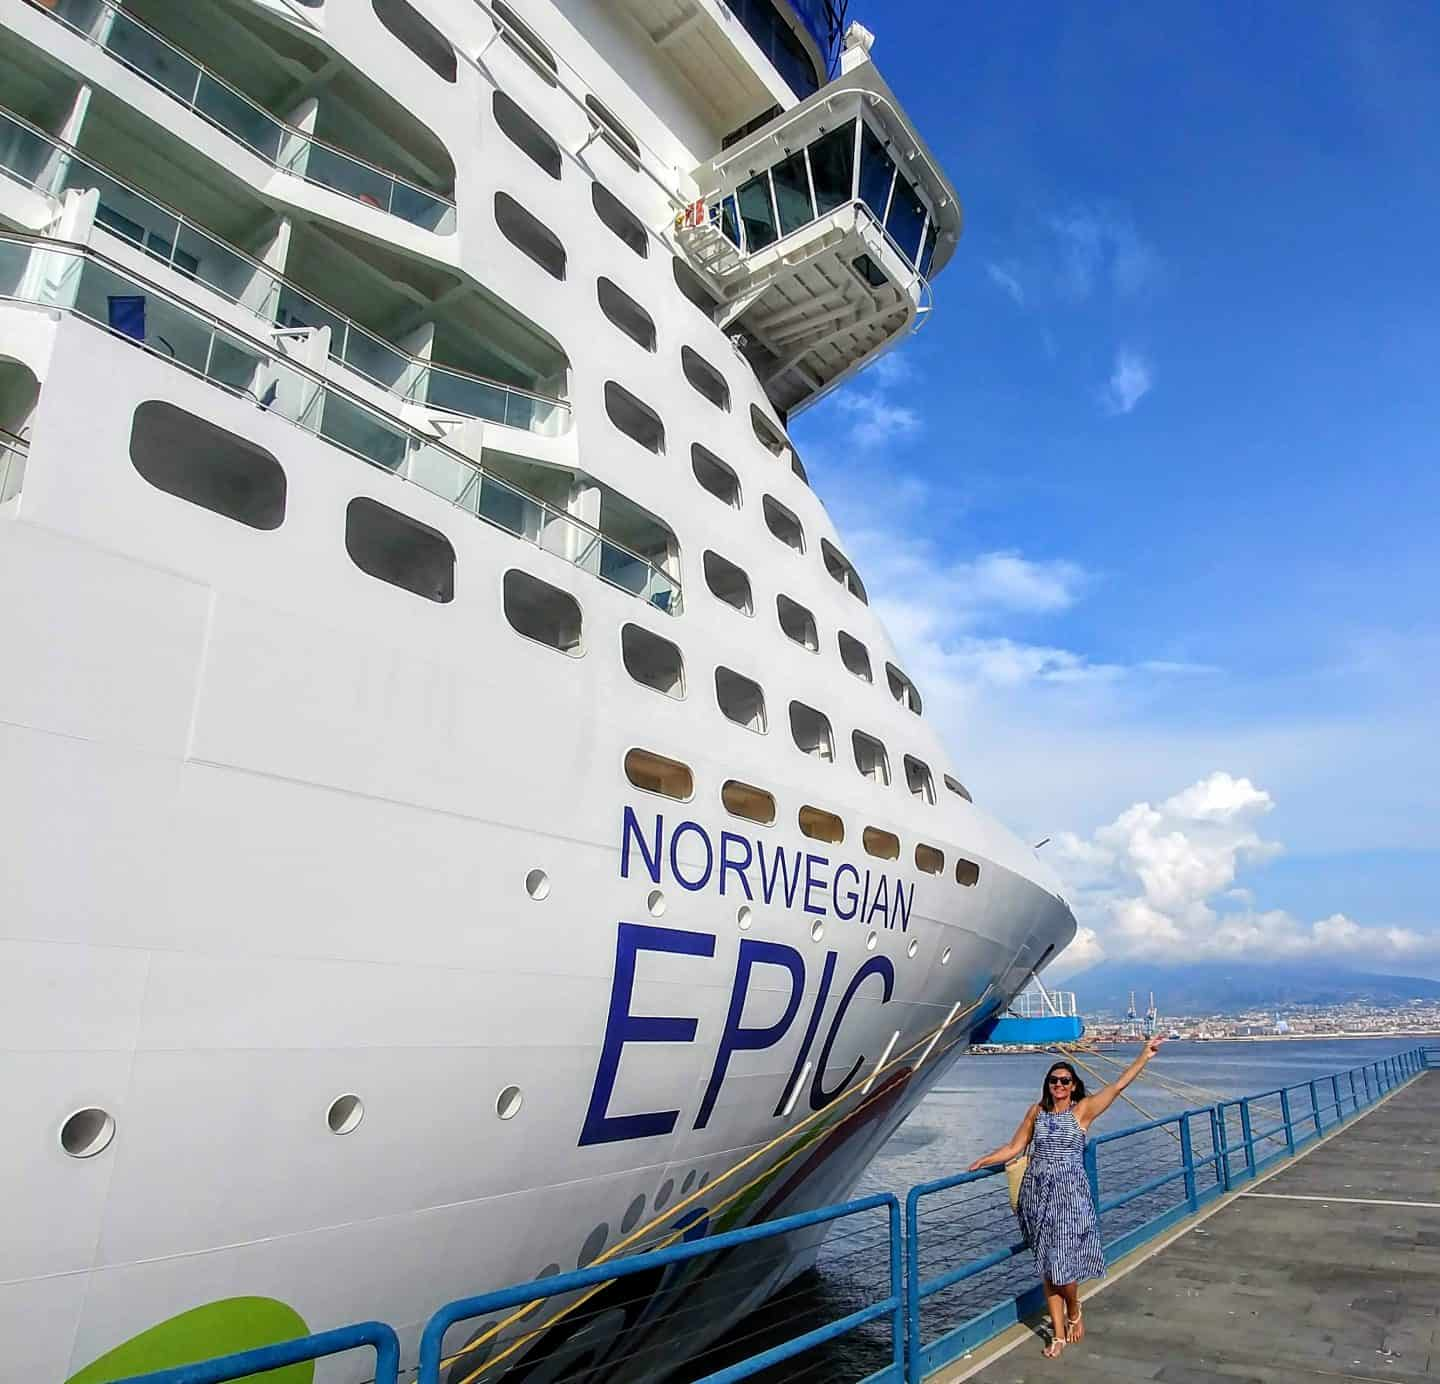 Our First Time Aboard Norwegian Epic Mediterranean Cruise